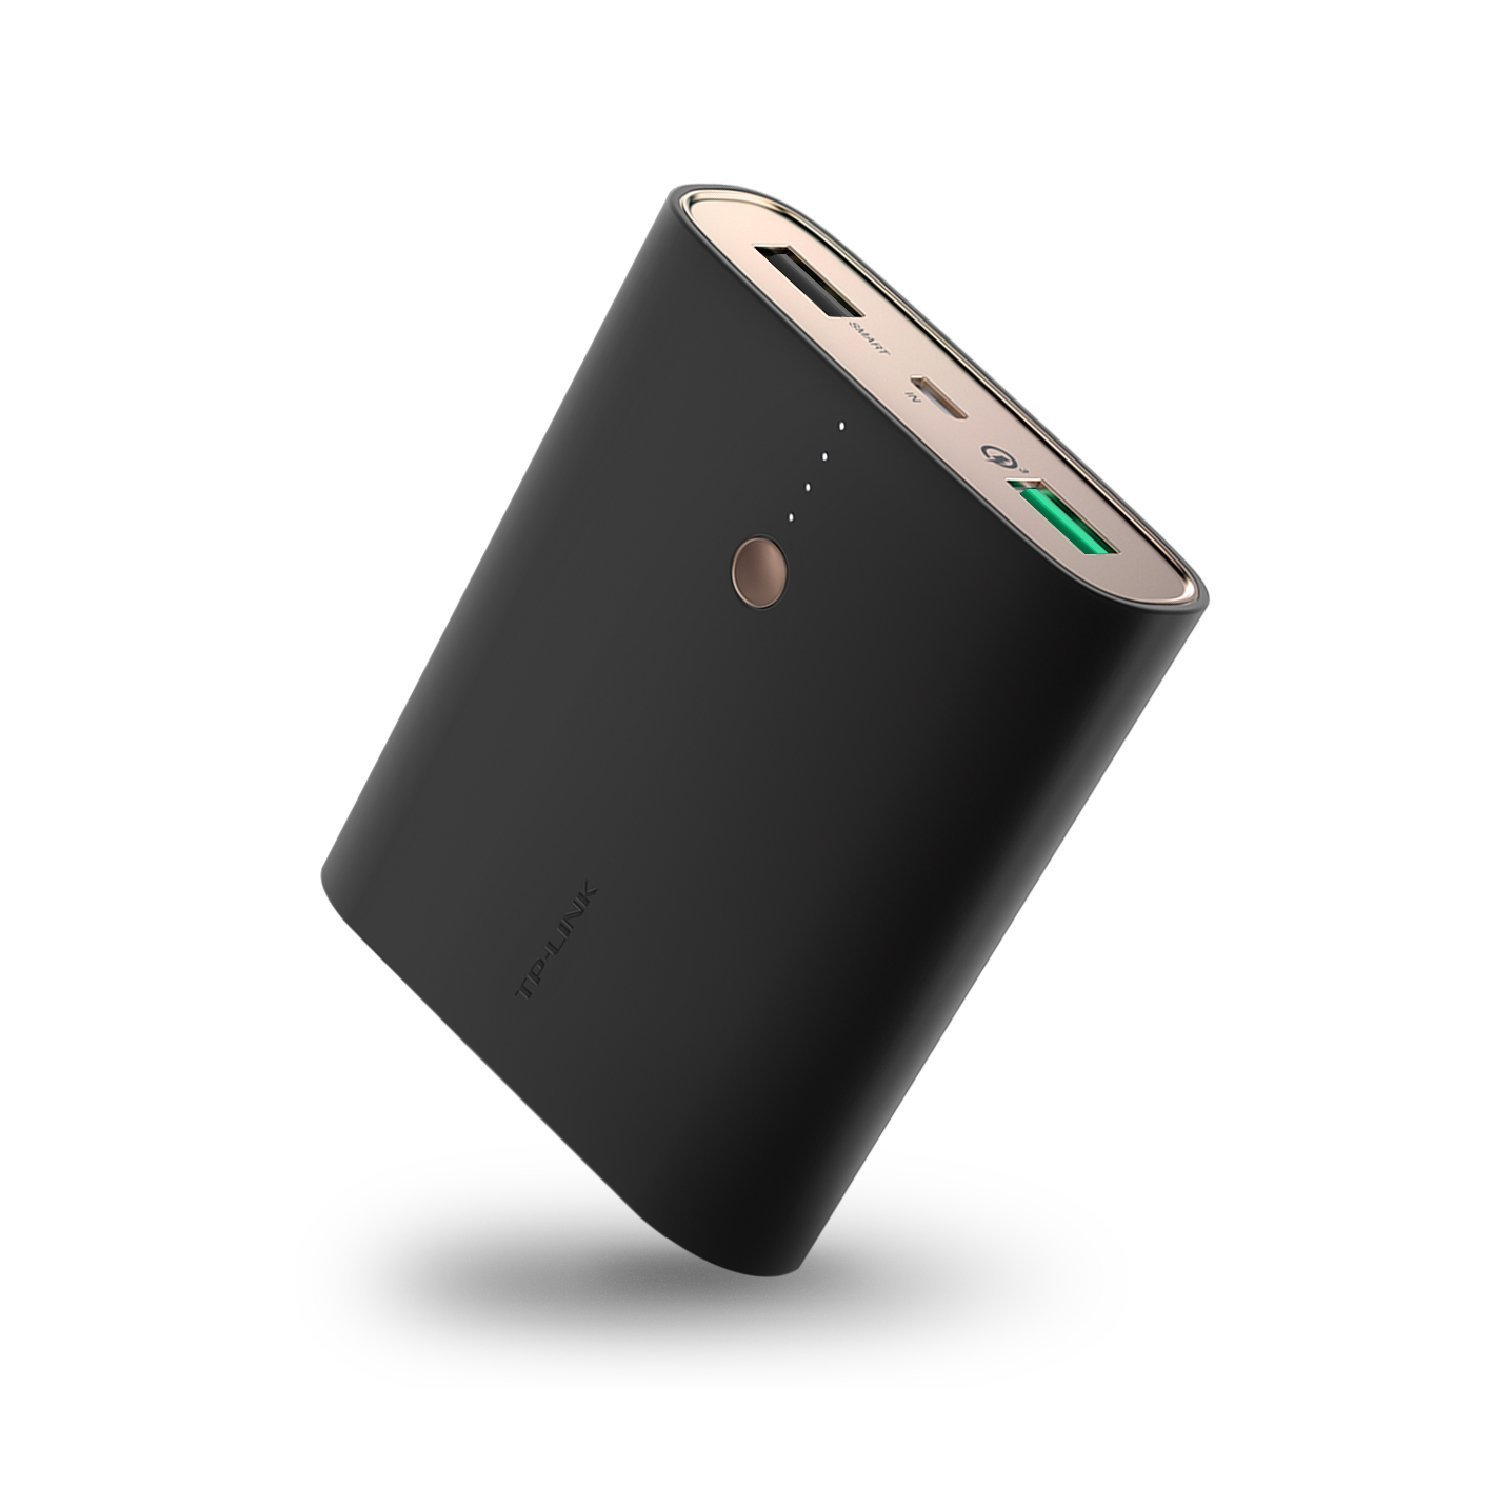 Tp Link 15600mah High Capacity Portable Battery Charger The Circuit Adapter Charge Mobile Phones Phone Quick 30 13400mah Qualcomm Certified Power Bank With Smart Charging Speed Universal For Samsung